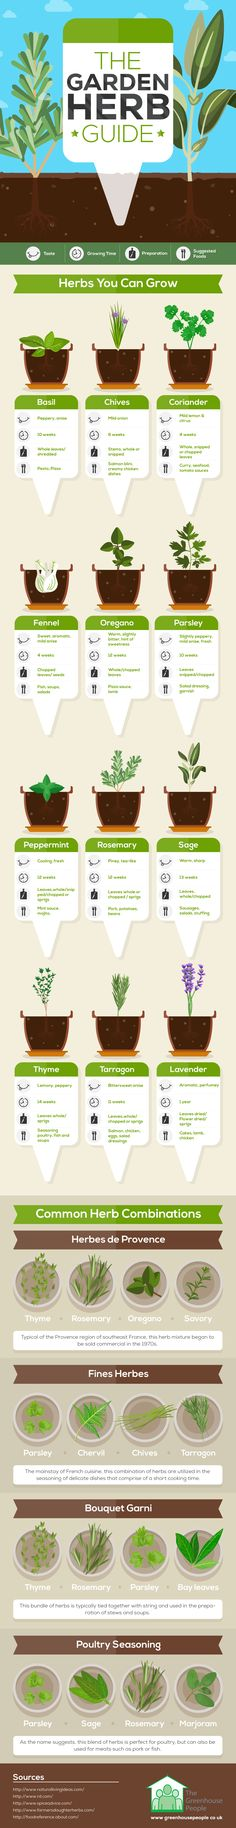 Herbs are very helpful. They are can be used as food as well as medicines thanks to their amazing beneficial qualities. So, it is safe to say it is a great idea to garden herbs so that you have them whenever you need them. Here is a guide to herb gardening. It will tell you everything you need to know as well as which herbs can be paired together. Infographic by – The Greenhouse People